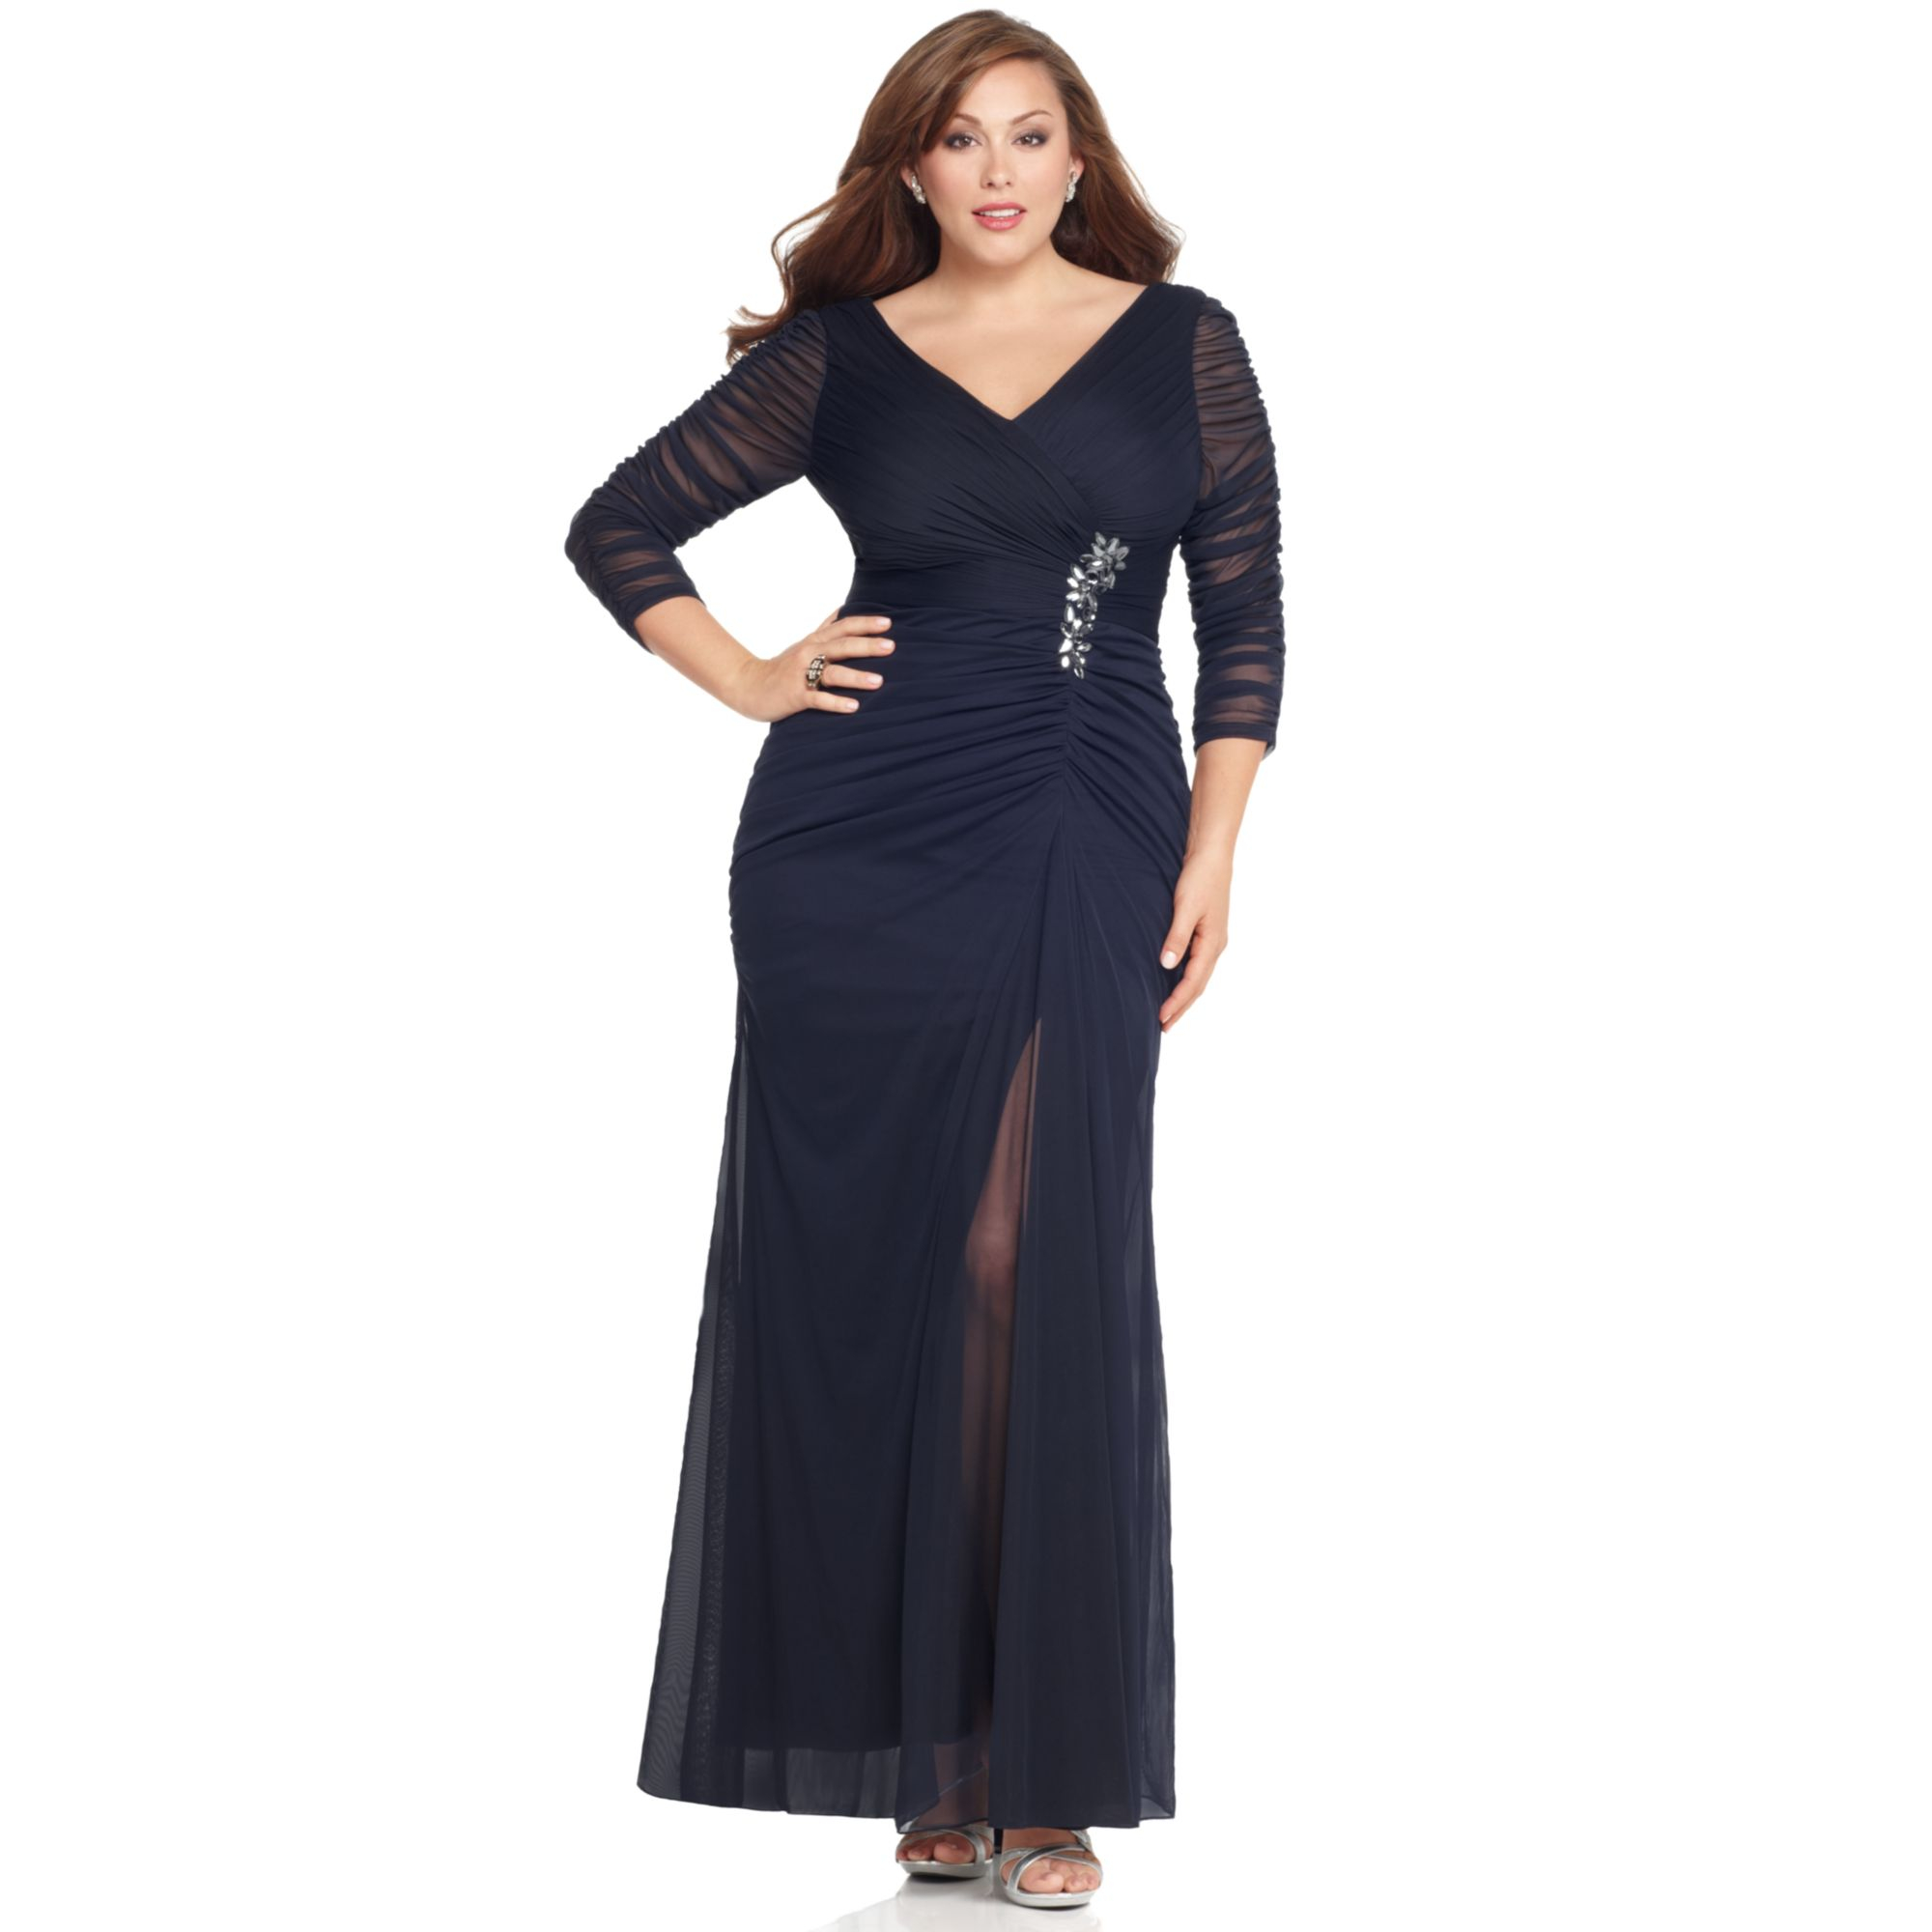 papell plus size three quarter sleeve ruched gown - Heart.impulsar.co